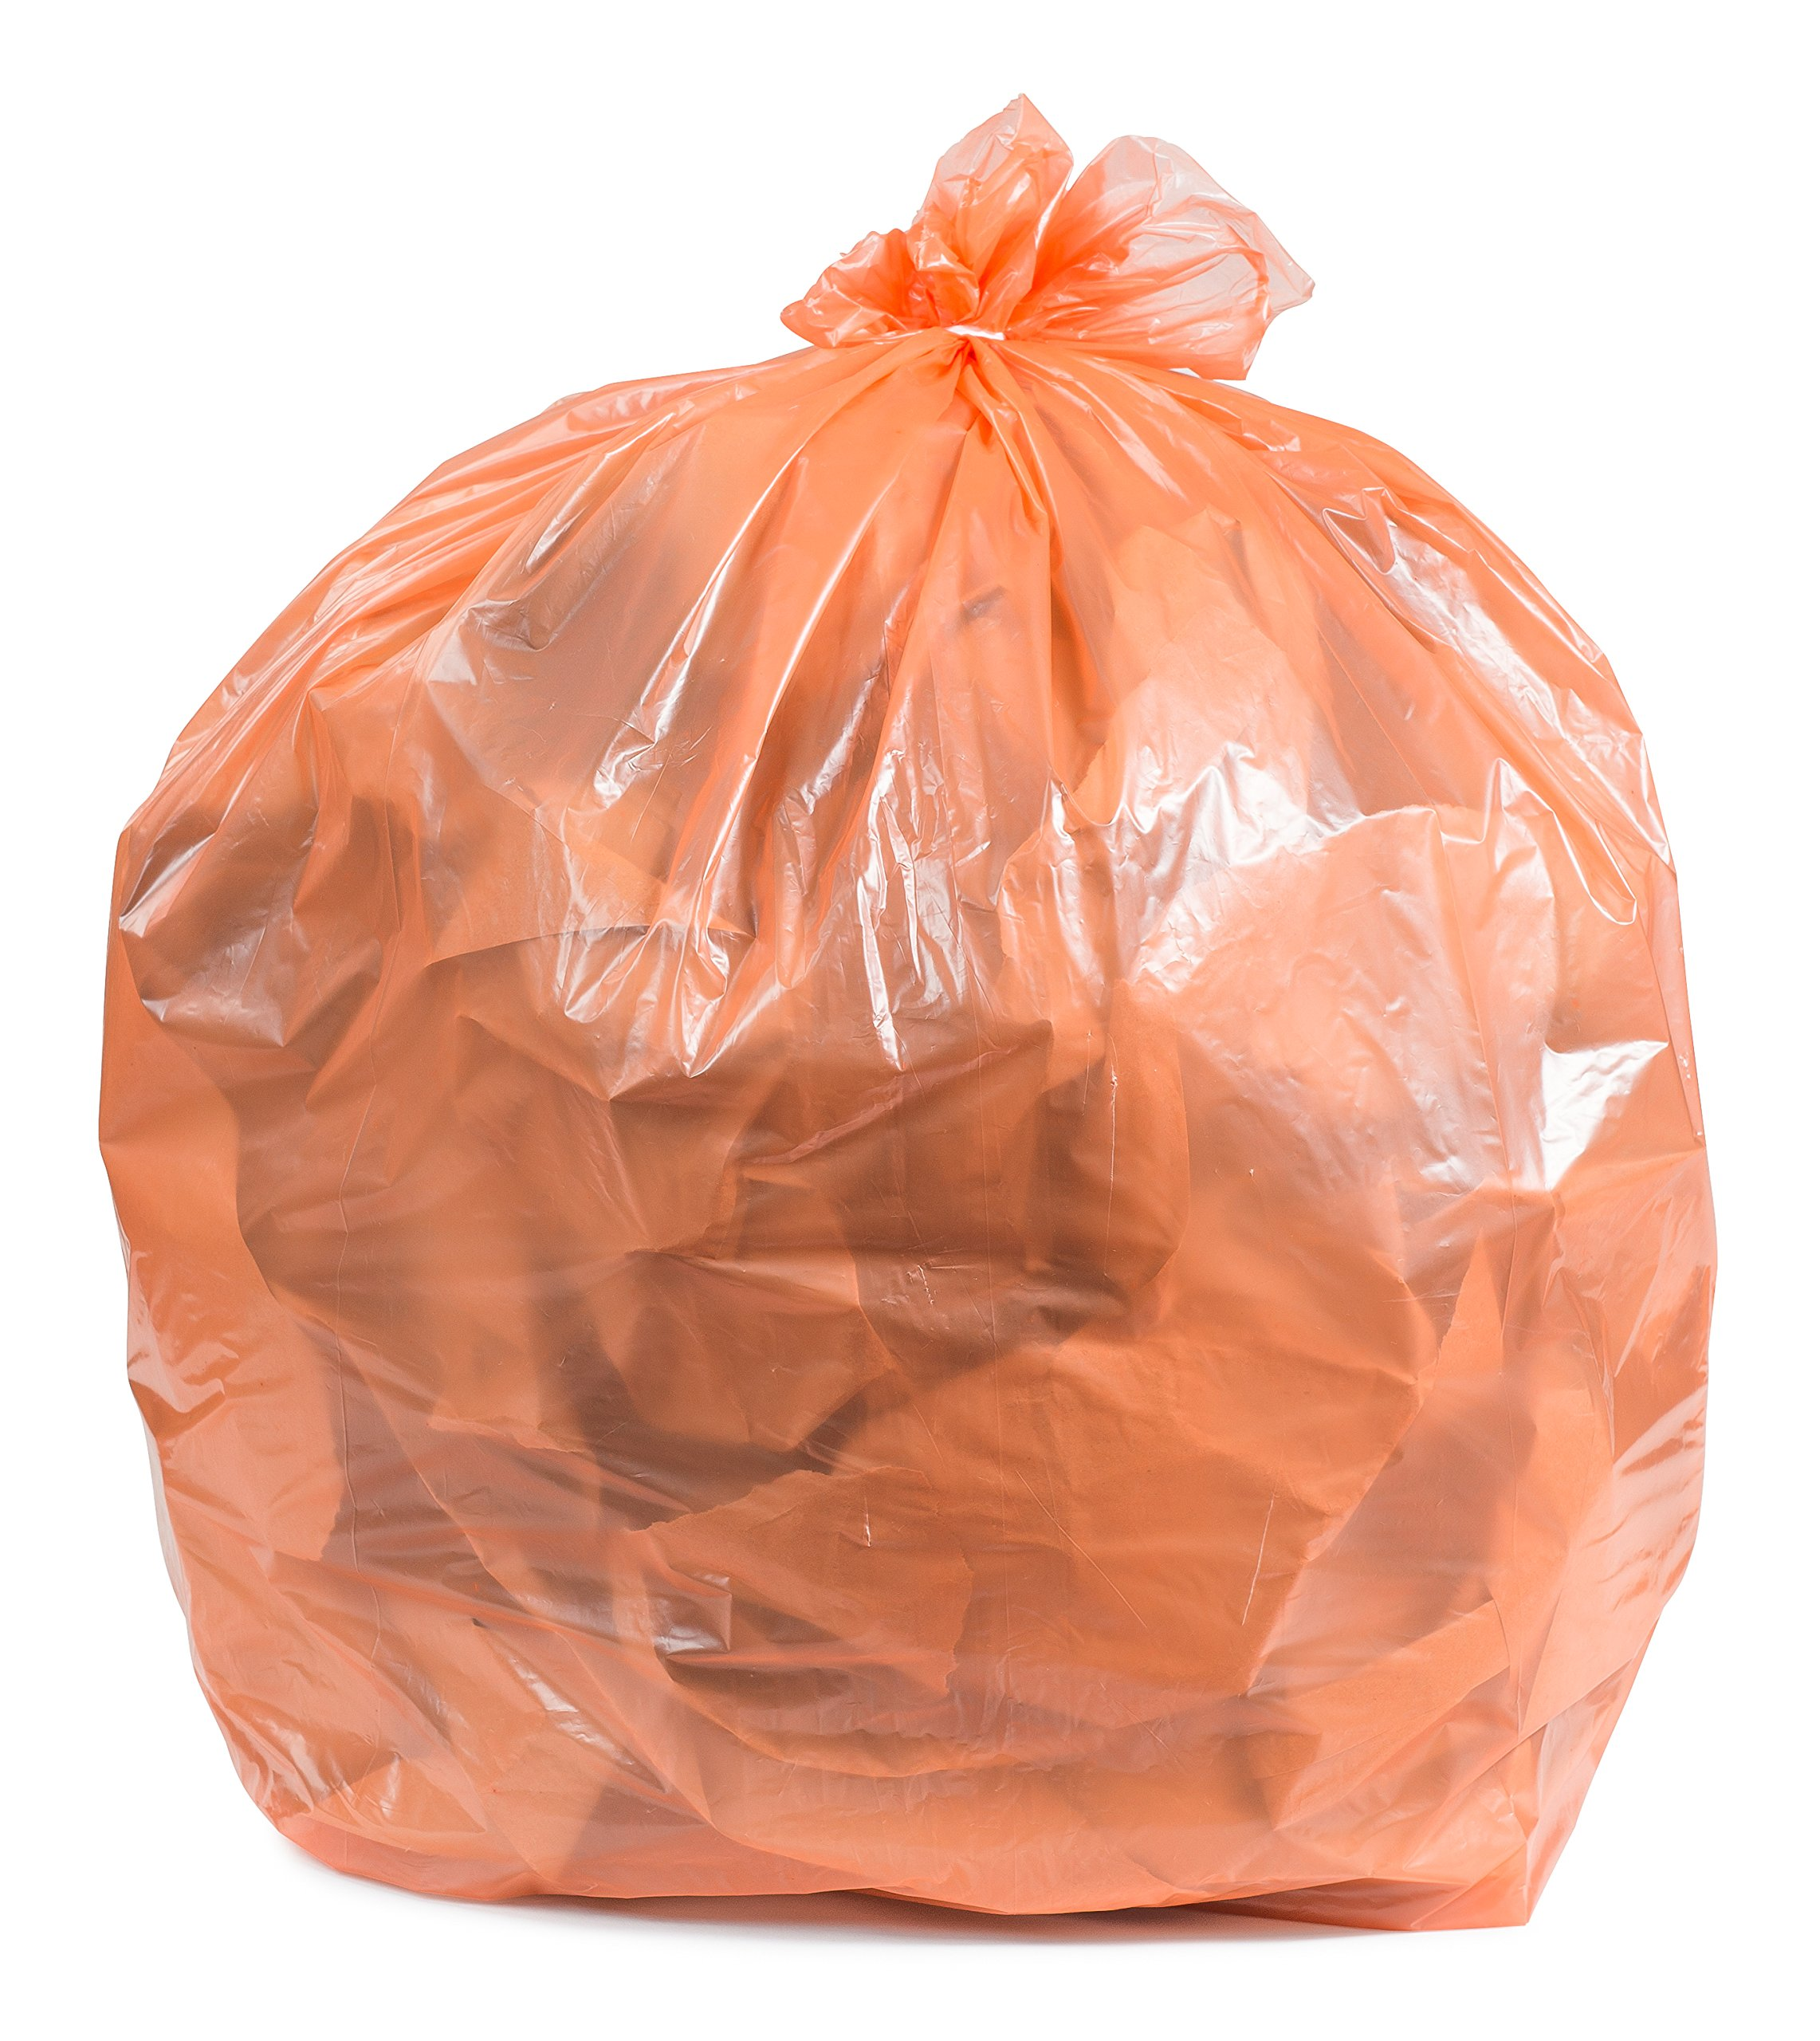 Plasticplace Orange 31-33 Gallon Trash Bags, 100 / Case 1.5 Mil by Plasticplace